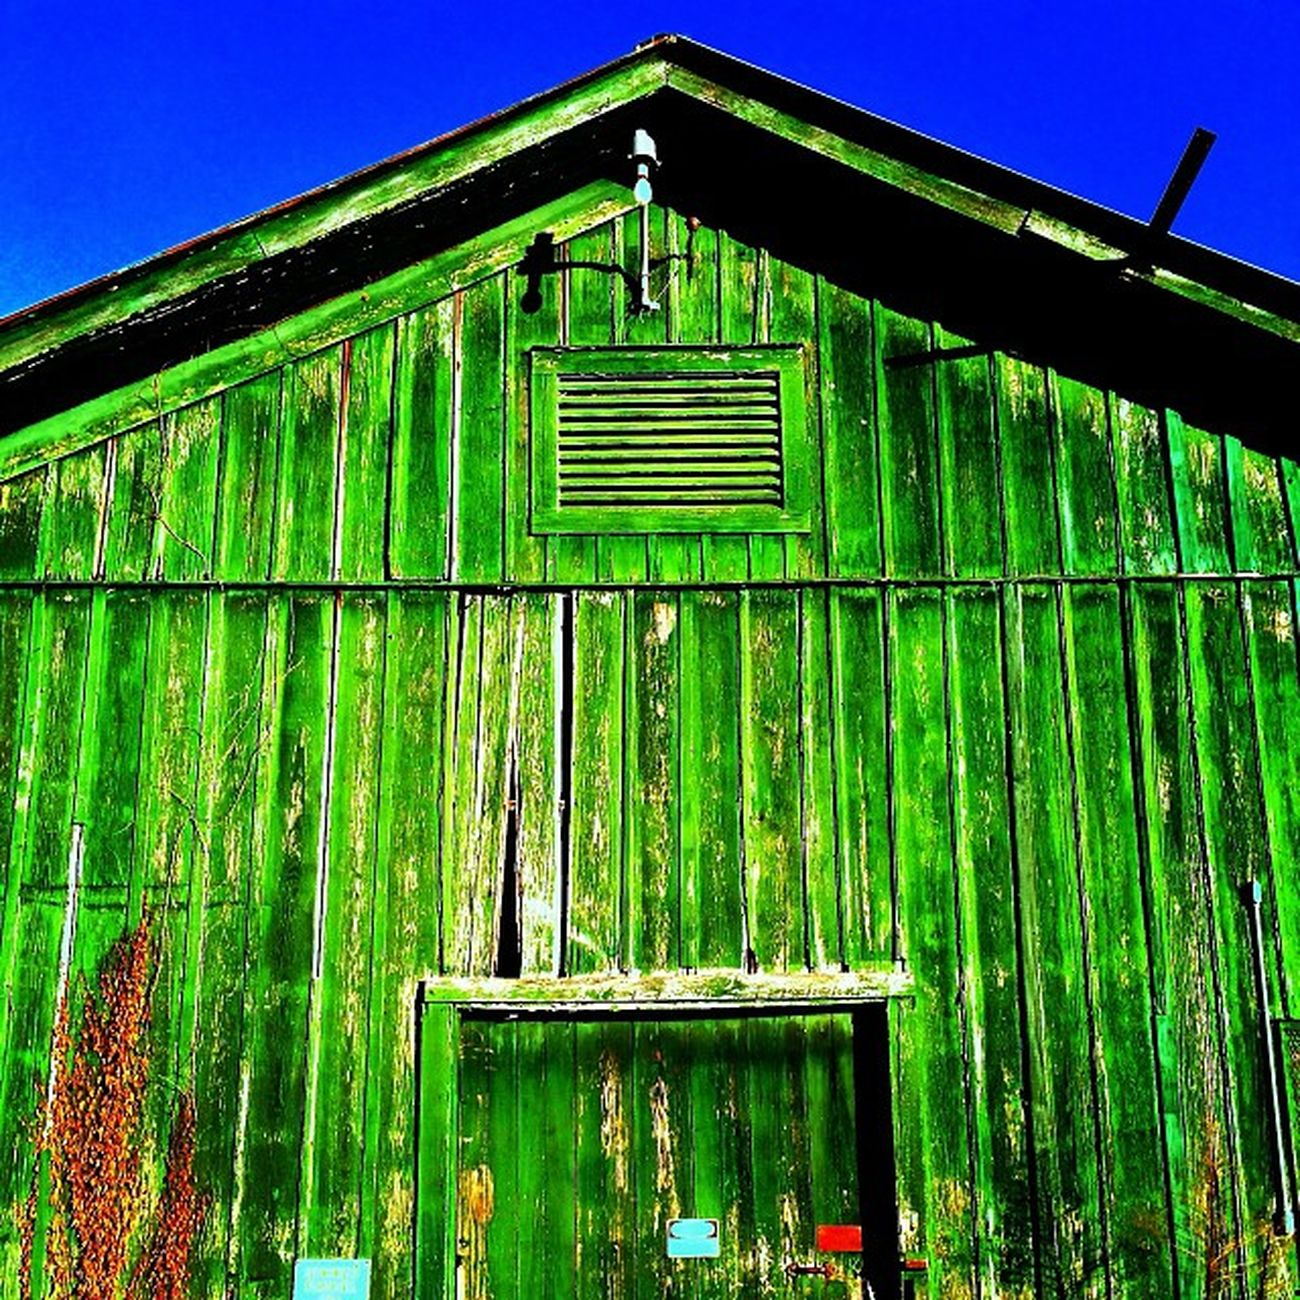 Abandoned Creepy Classic Haunted Barn Broken Closed Dilapidated Louisiana Condemned Trailblazers_rurex BatonRouge Deepsouth OutcastAmerica Onlylouisiana Louisianatravel Abandonedlouisiana Trb_love_shack_baby Brusly